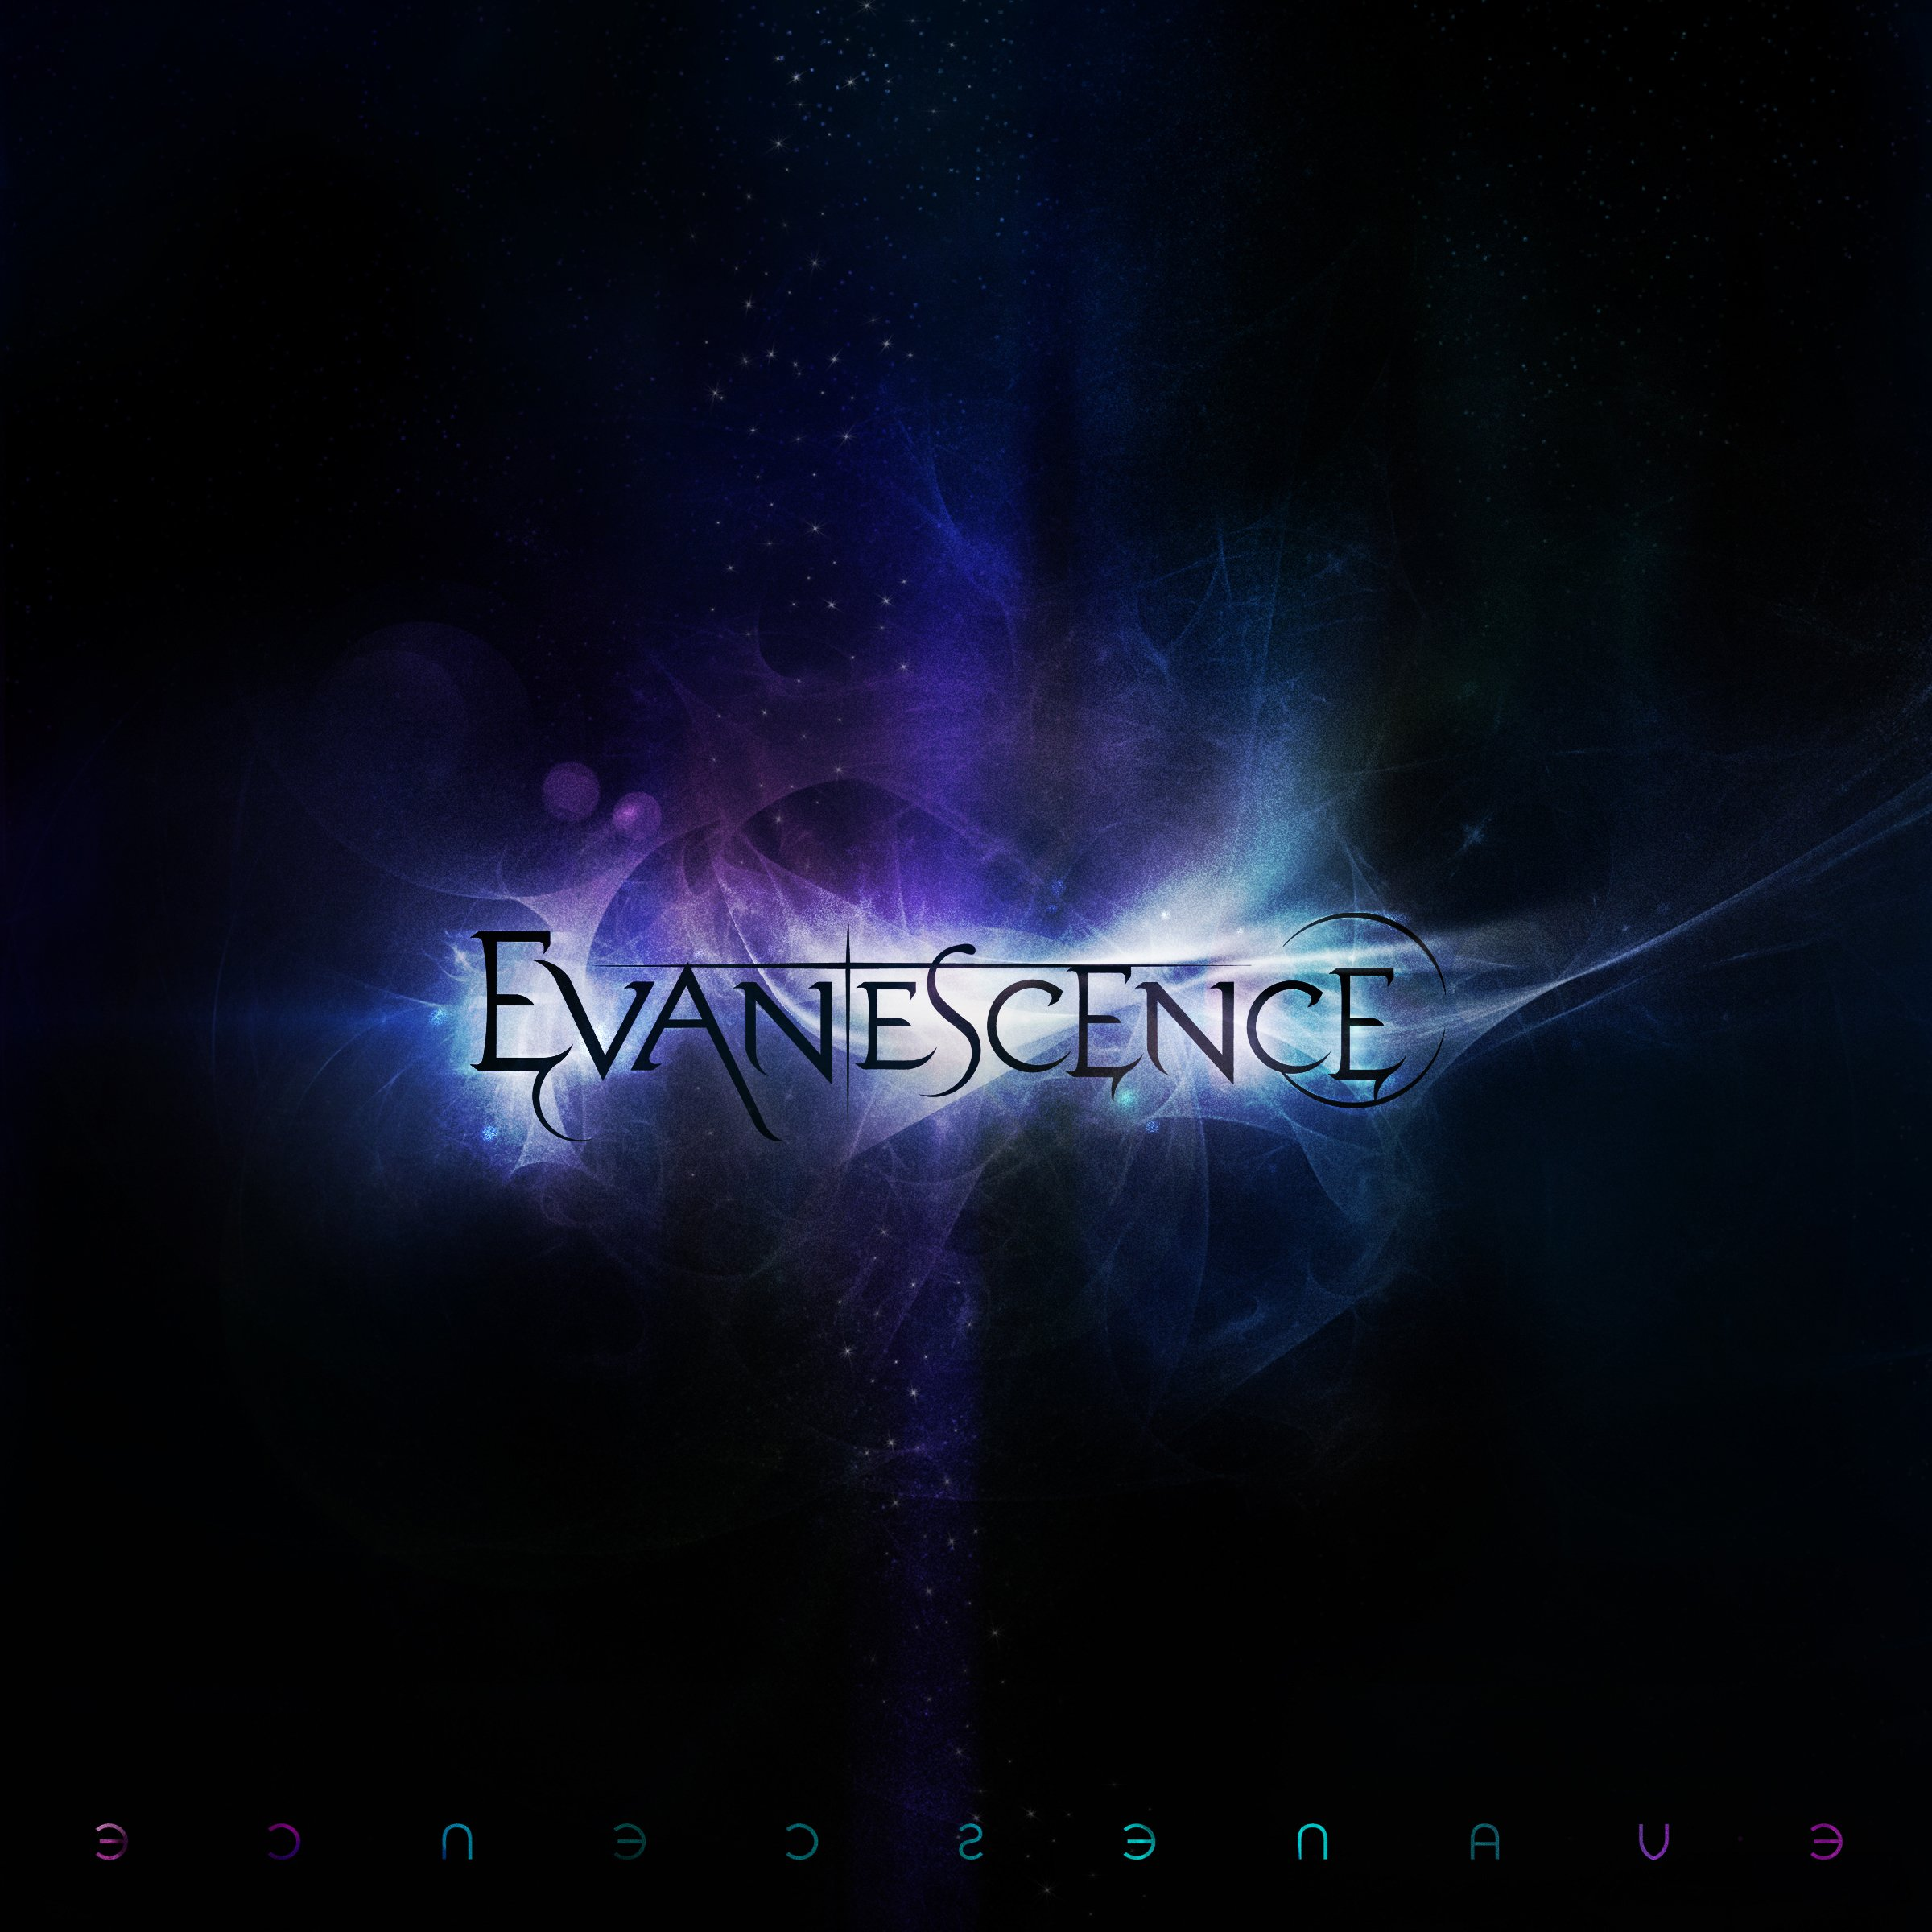 Evanescence by Dazzle13 2400x2400